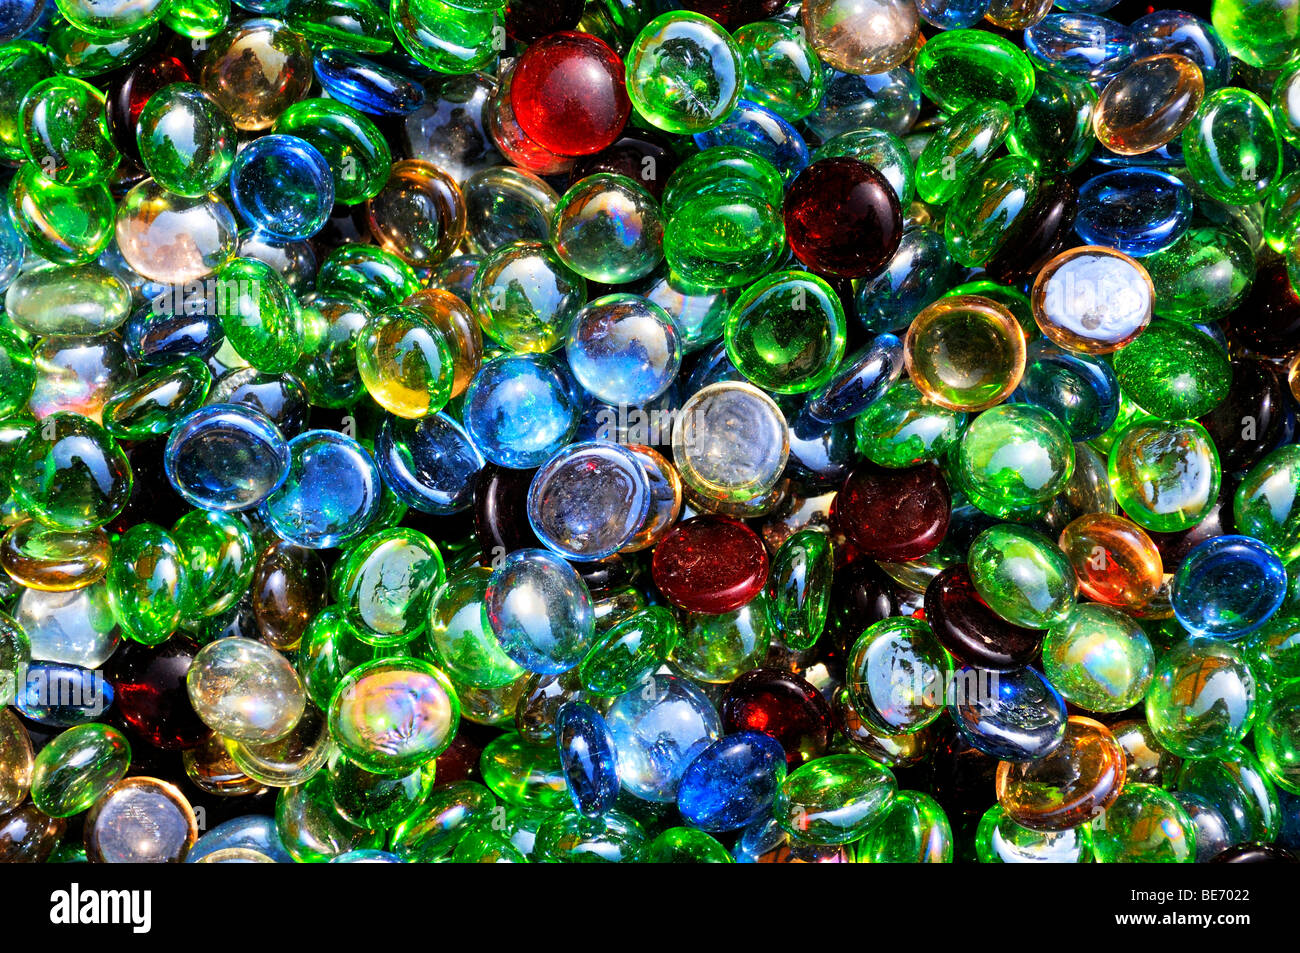 Colorful glass beads, filling the picture - Stock Image